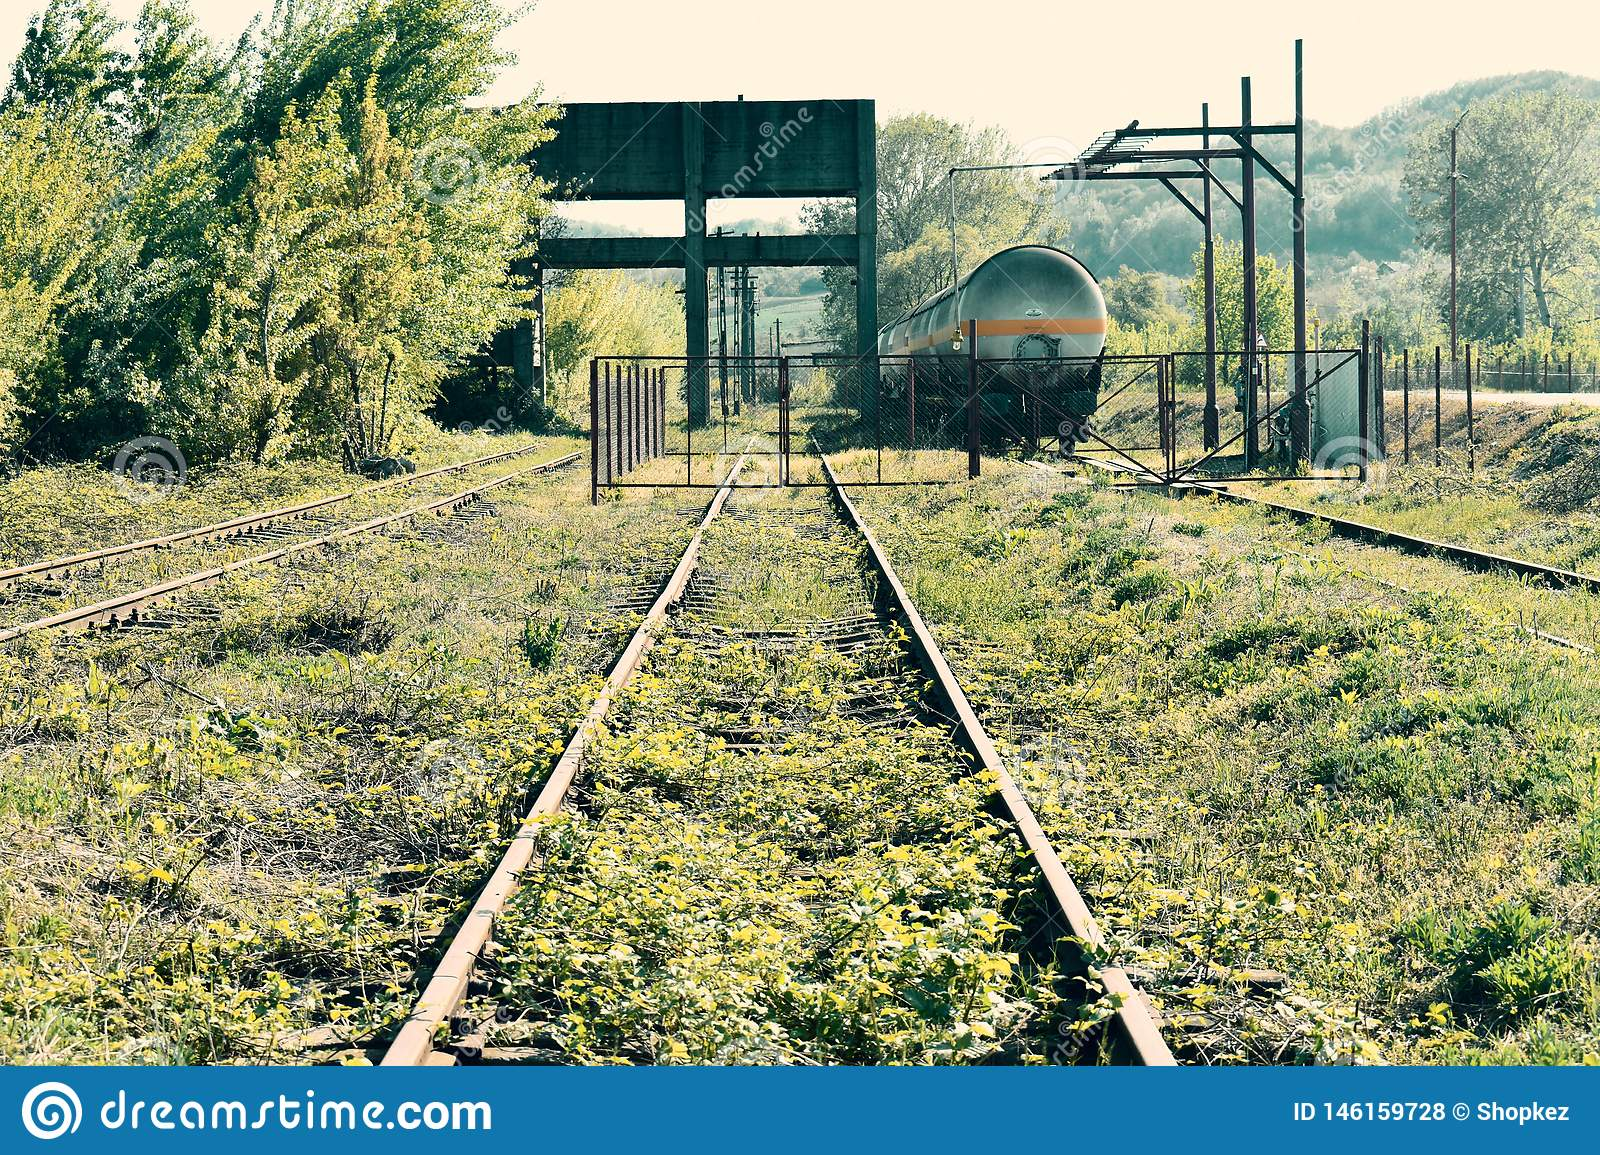 Old abandoned rusty rails with weeds and plants through them